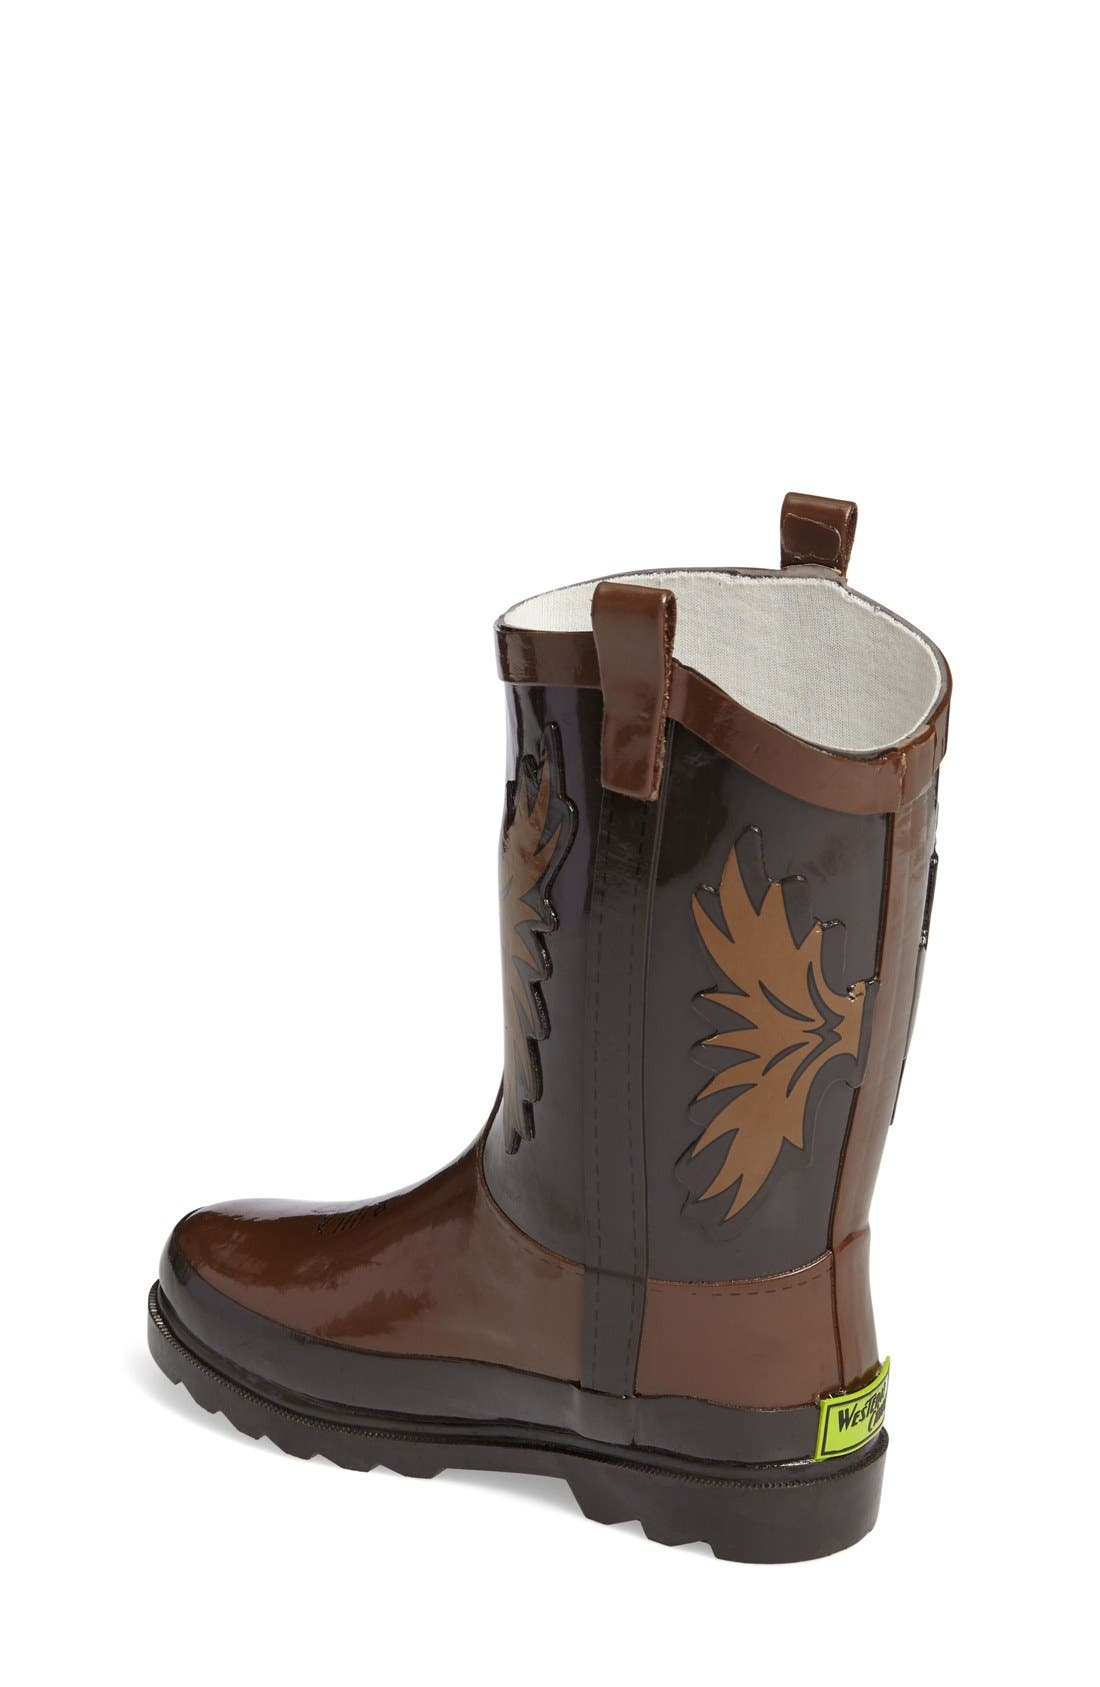 Cowboy Waterproof Rain Boot,                             Alternate thumbnail 2, color,                             Brown